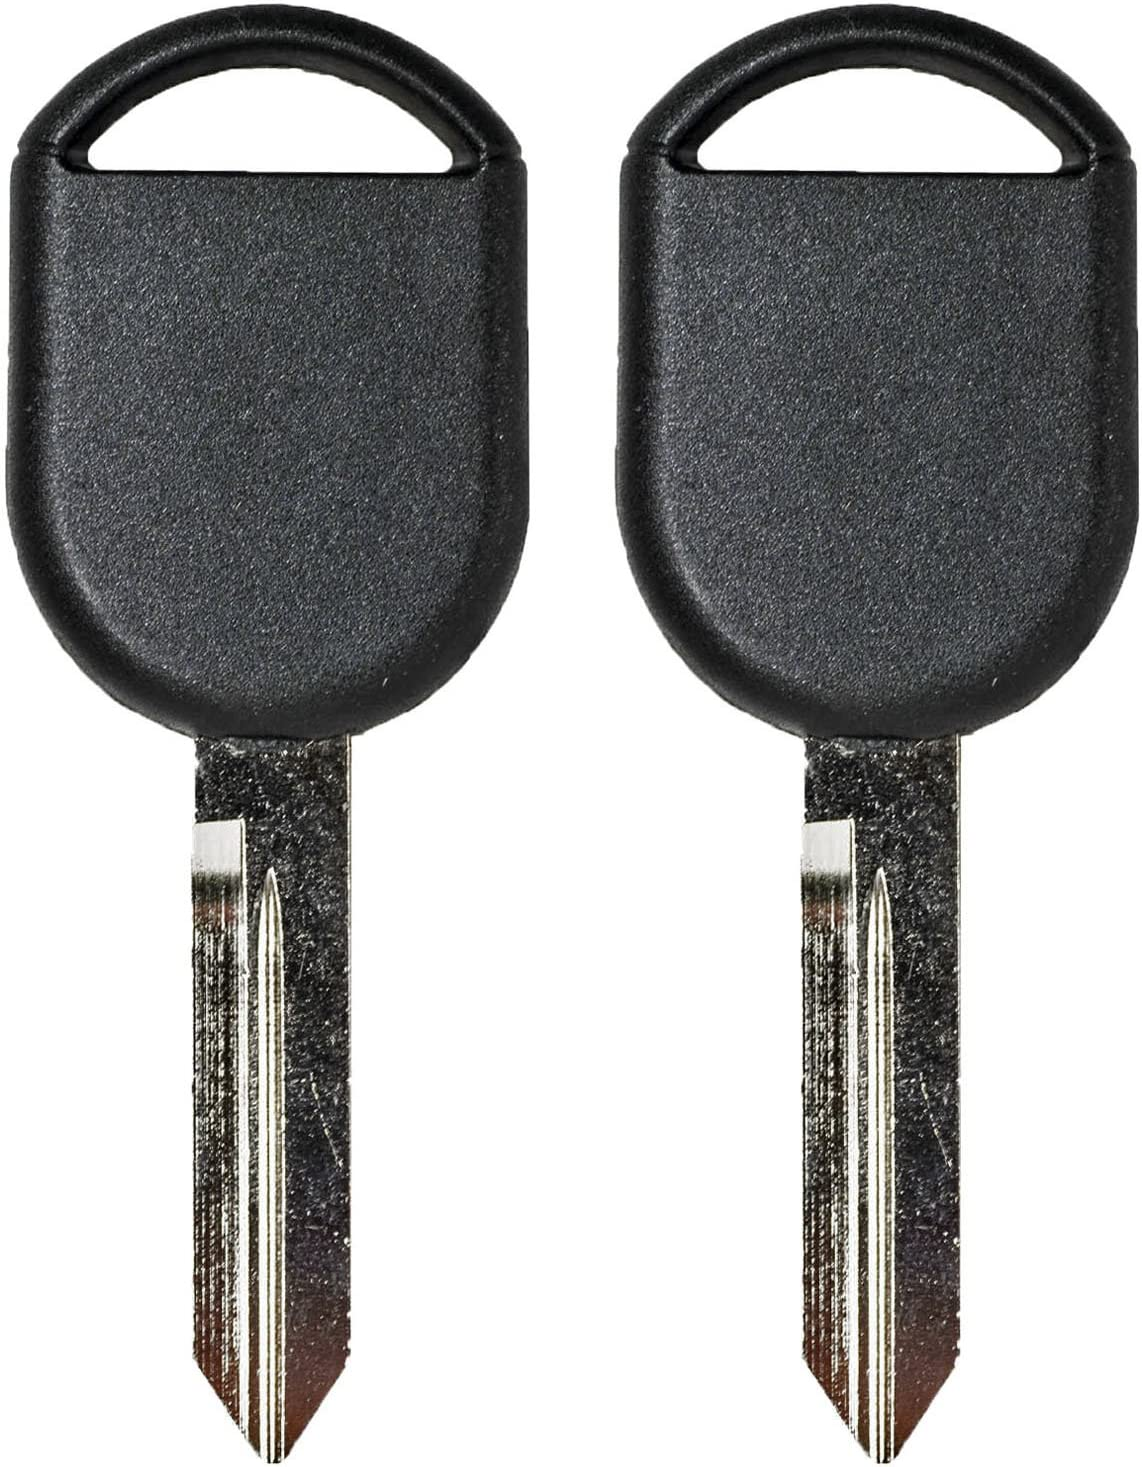 QualityKeylessPlus TWO Replacement Transponder Chip Keys H92PT for Ford Vehicles with FREE KEYTAG